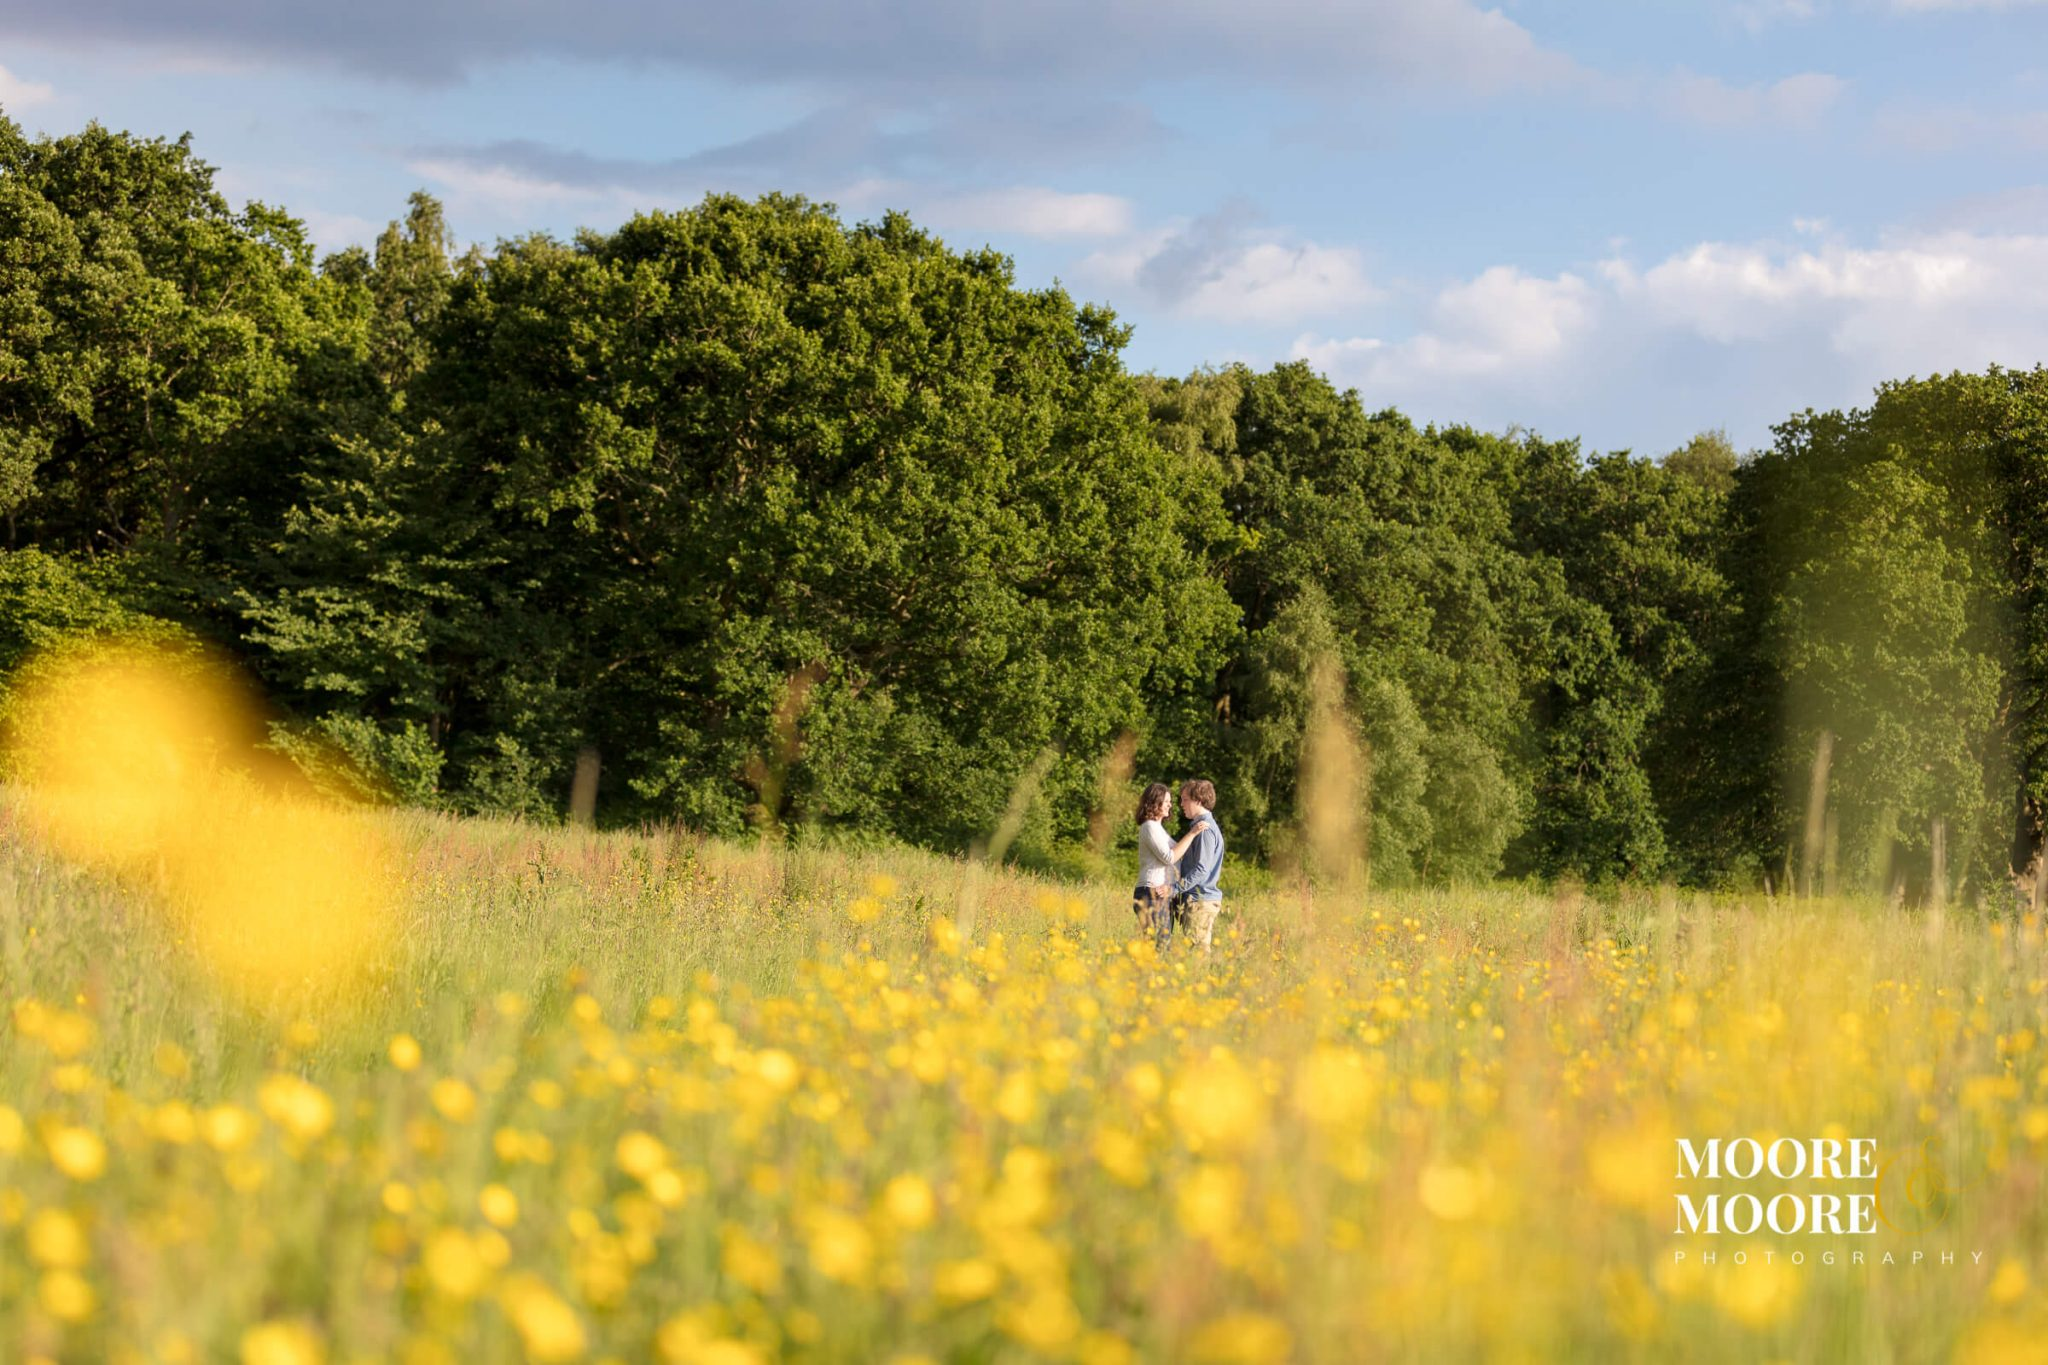 Amid the buttercup meadows. Beautiful engagement photography by Hampshire photographer, moore&moore